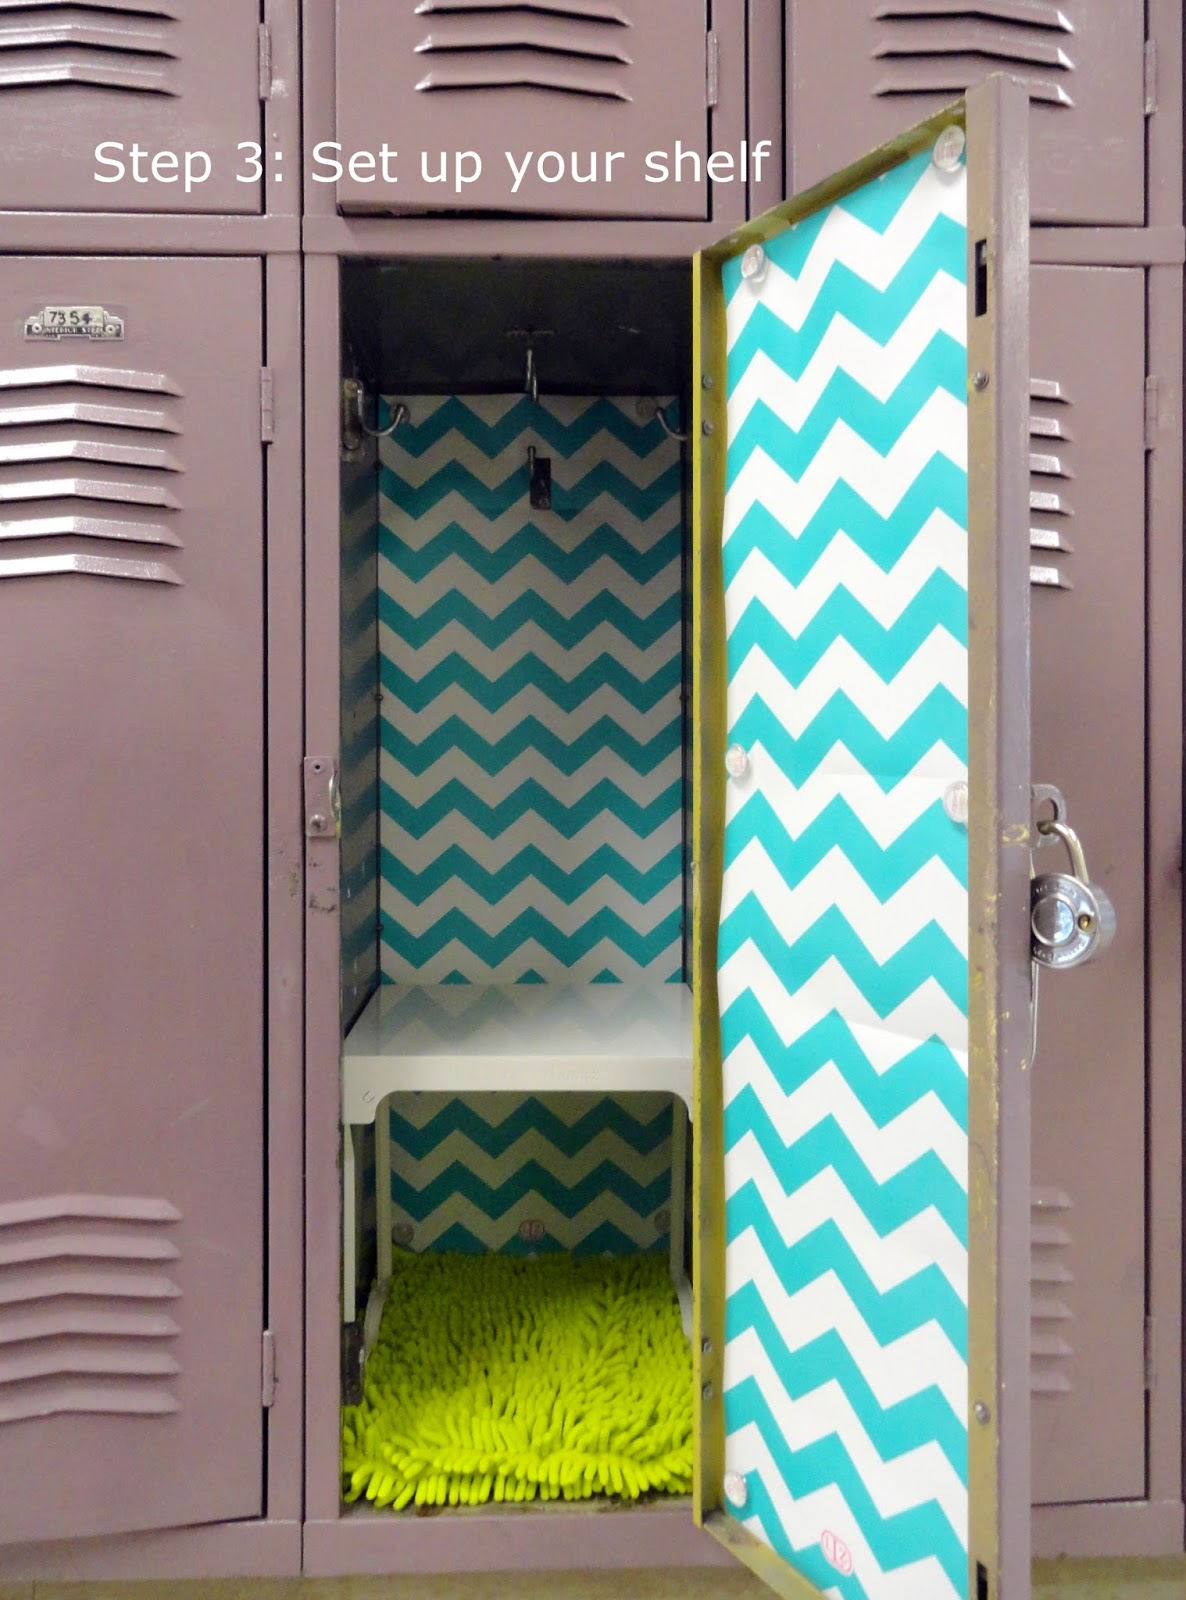 5 simple steps to decorating a fabulous locker with locker lookz 5 simple steps to decorating a fabulous locker with locker lookz rachel teodoro aloadofball Images